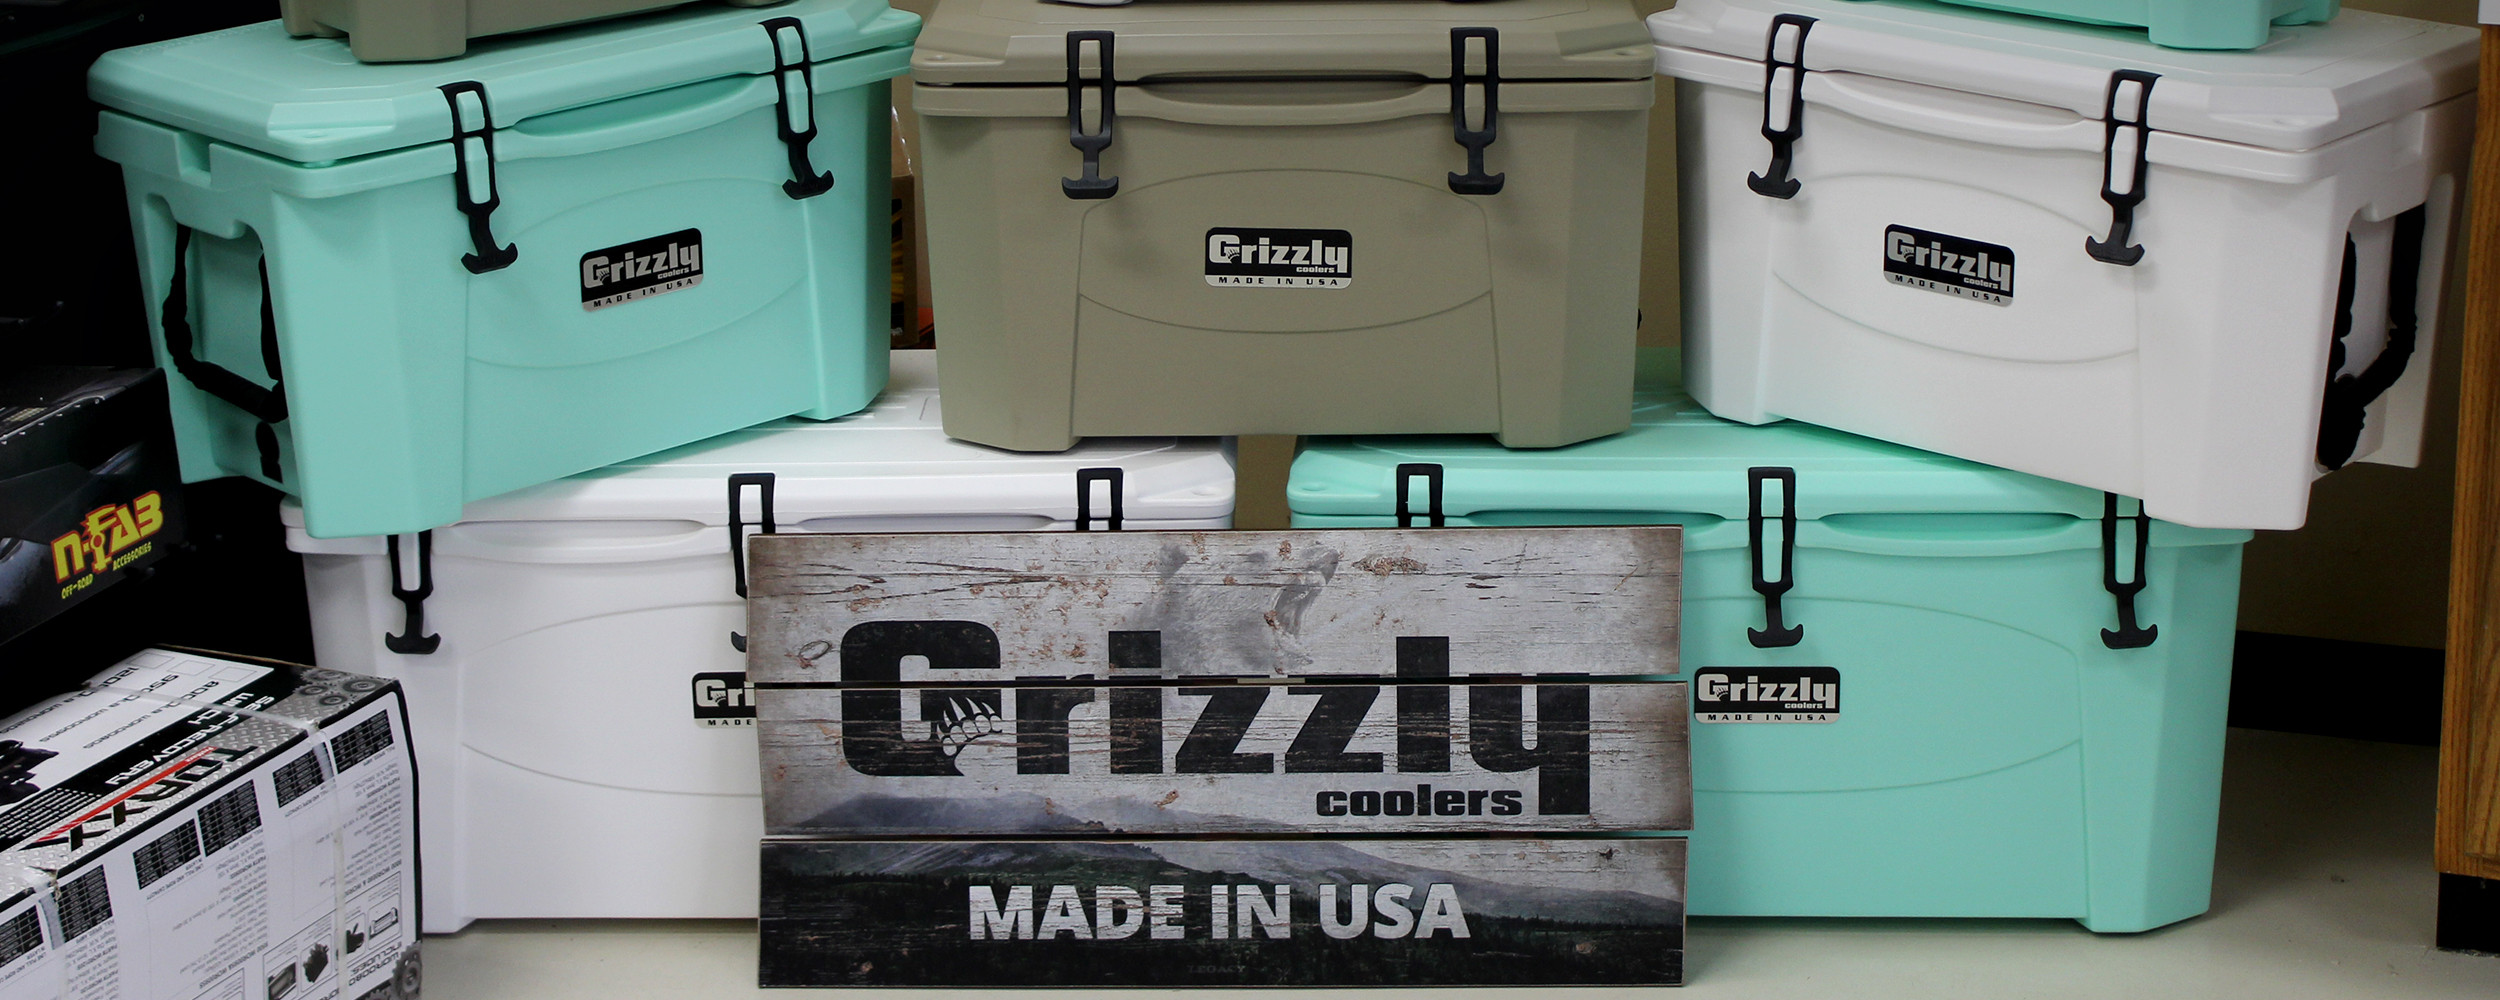 10 Best Grizzly Coolers For Tactical Activity